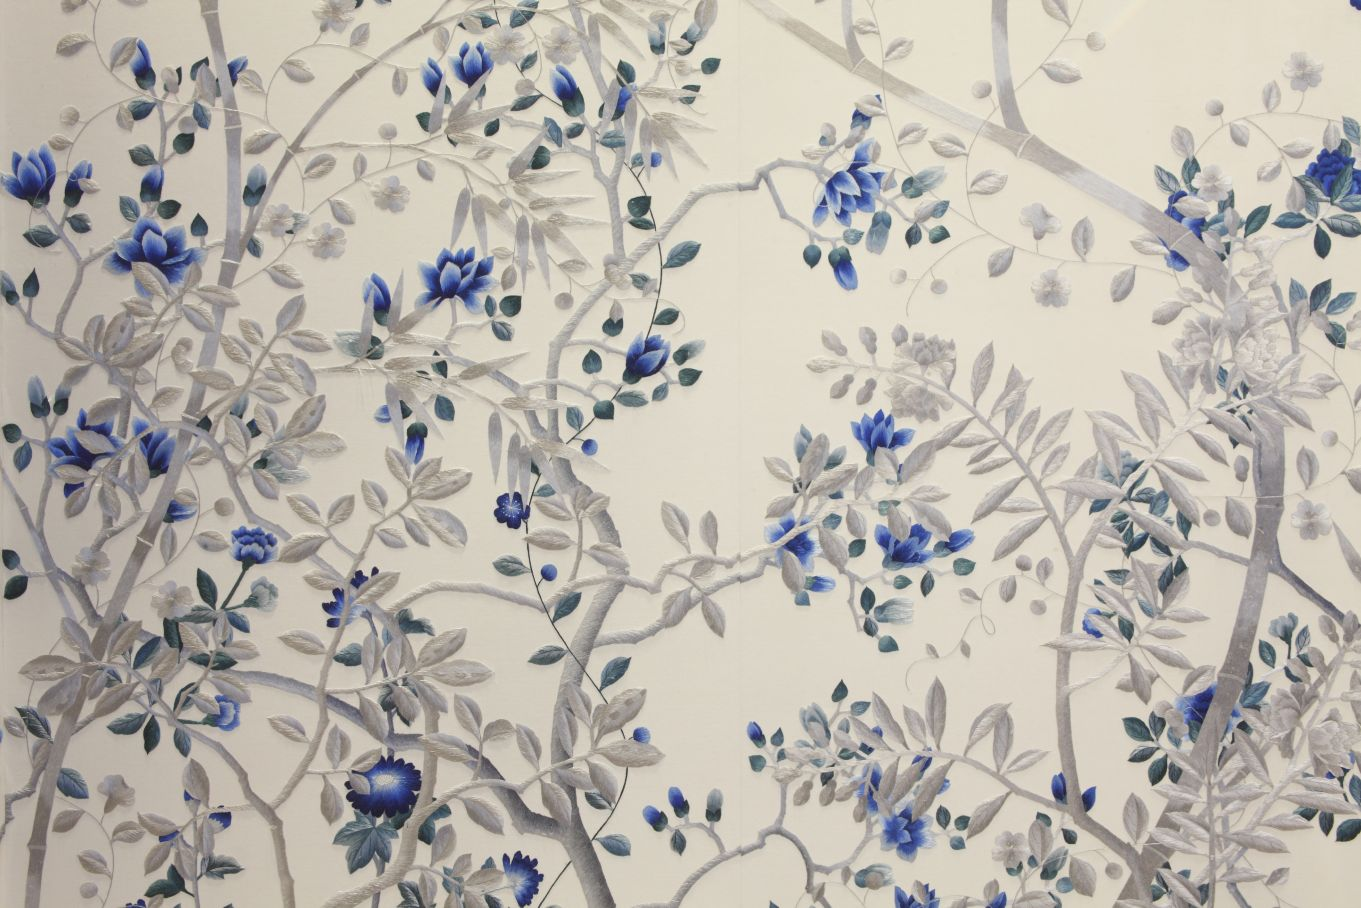 Paradiso in Custom Embroidered Sapphire colours on White Silk